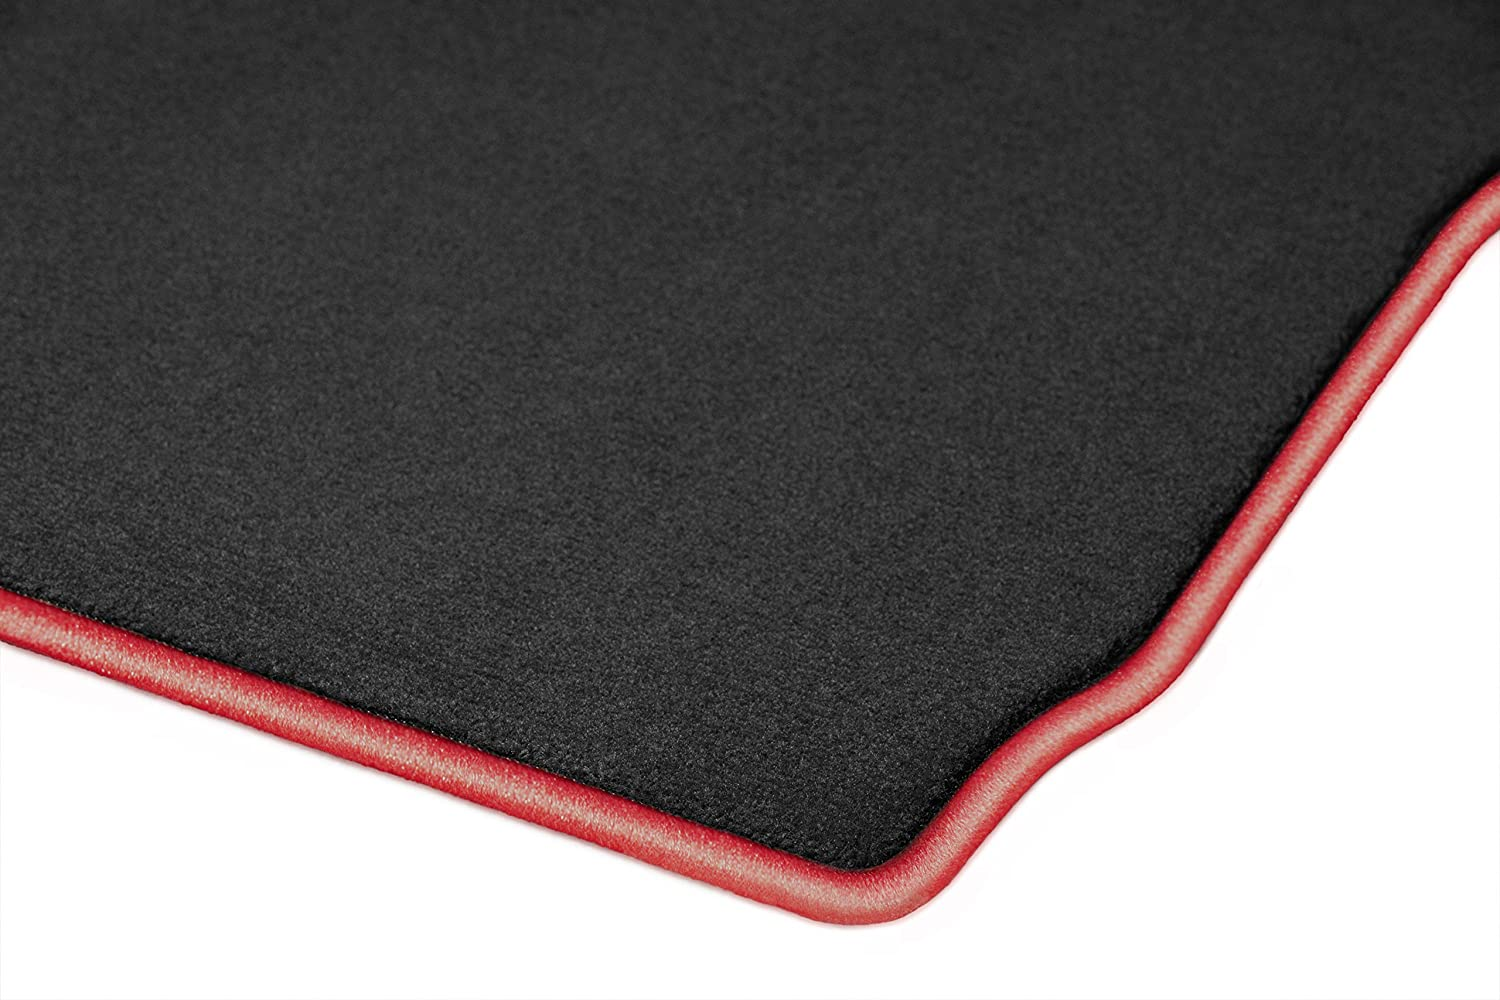 2010 2011 GGBAILEY D4589A-S2A-BLK/_BR Custom Fit Car Mats for 2009 Passenger /& Rear Floor 2012 2013 2014 Hyundai Genesis Sedan Black with Red Edging Driver